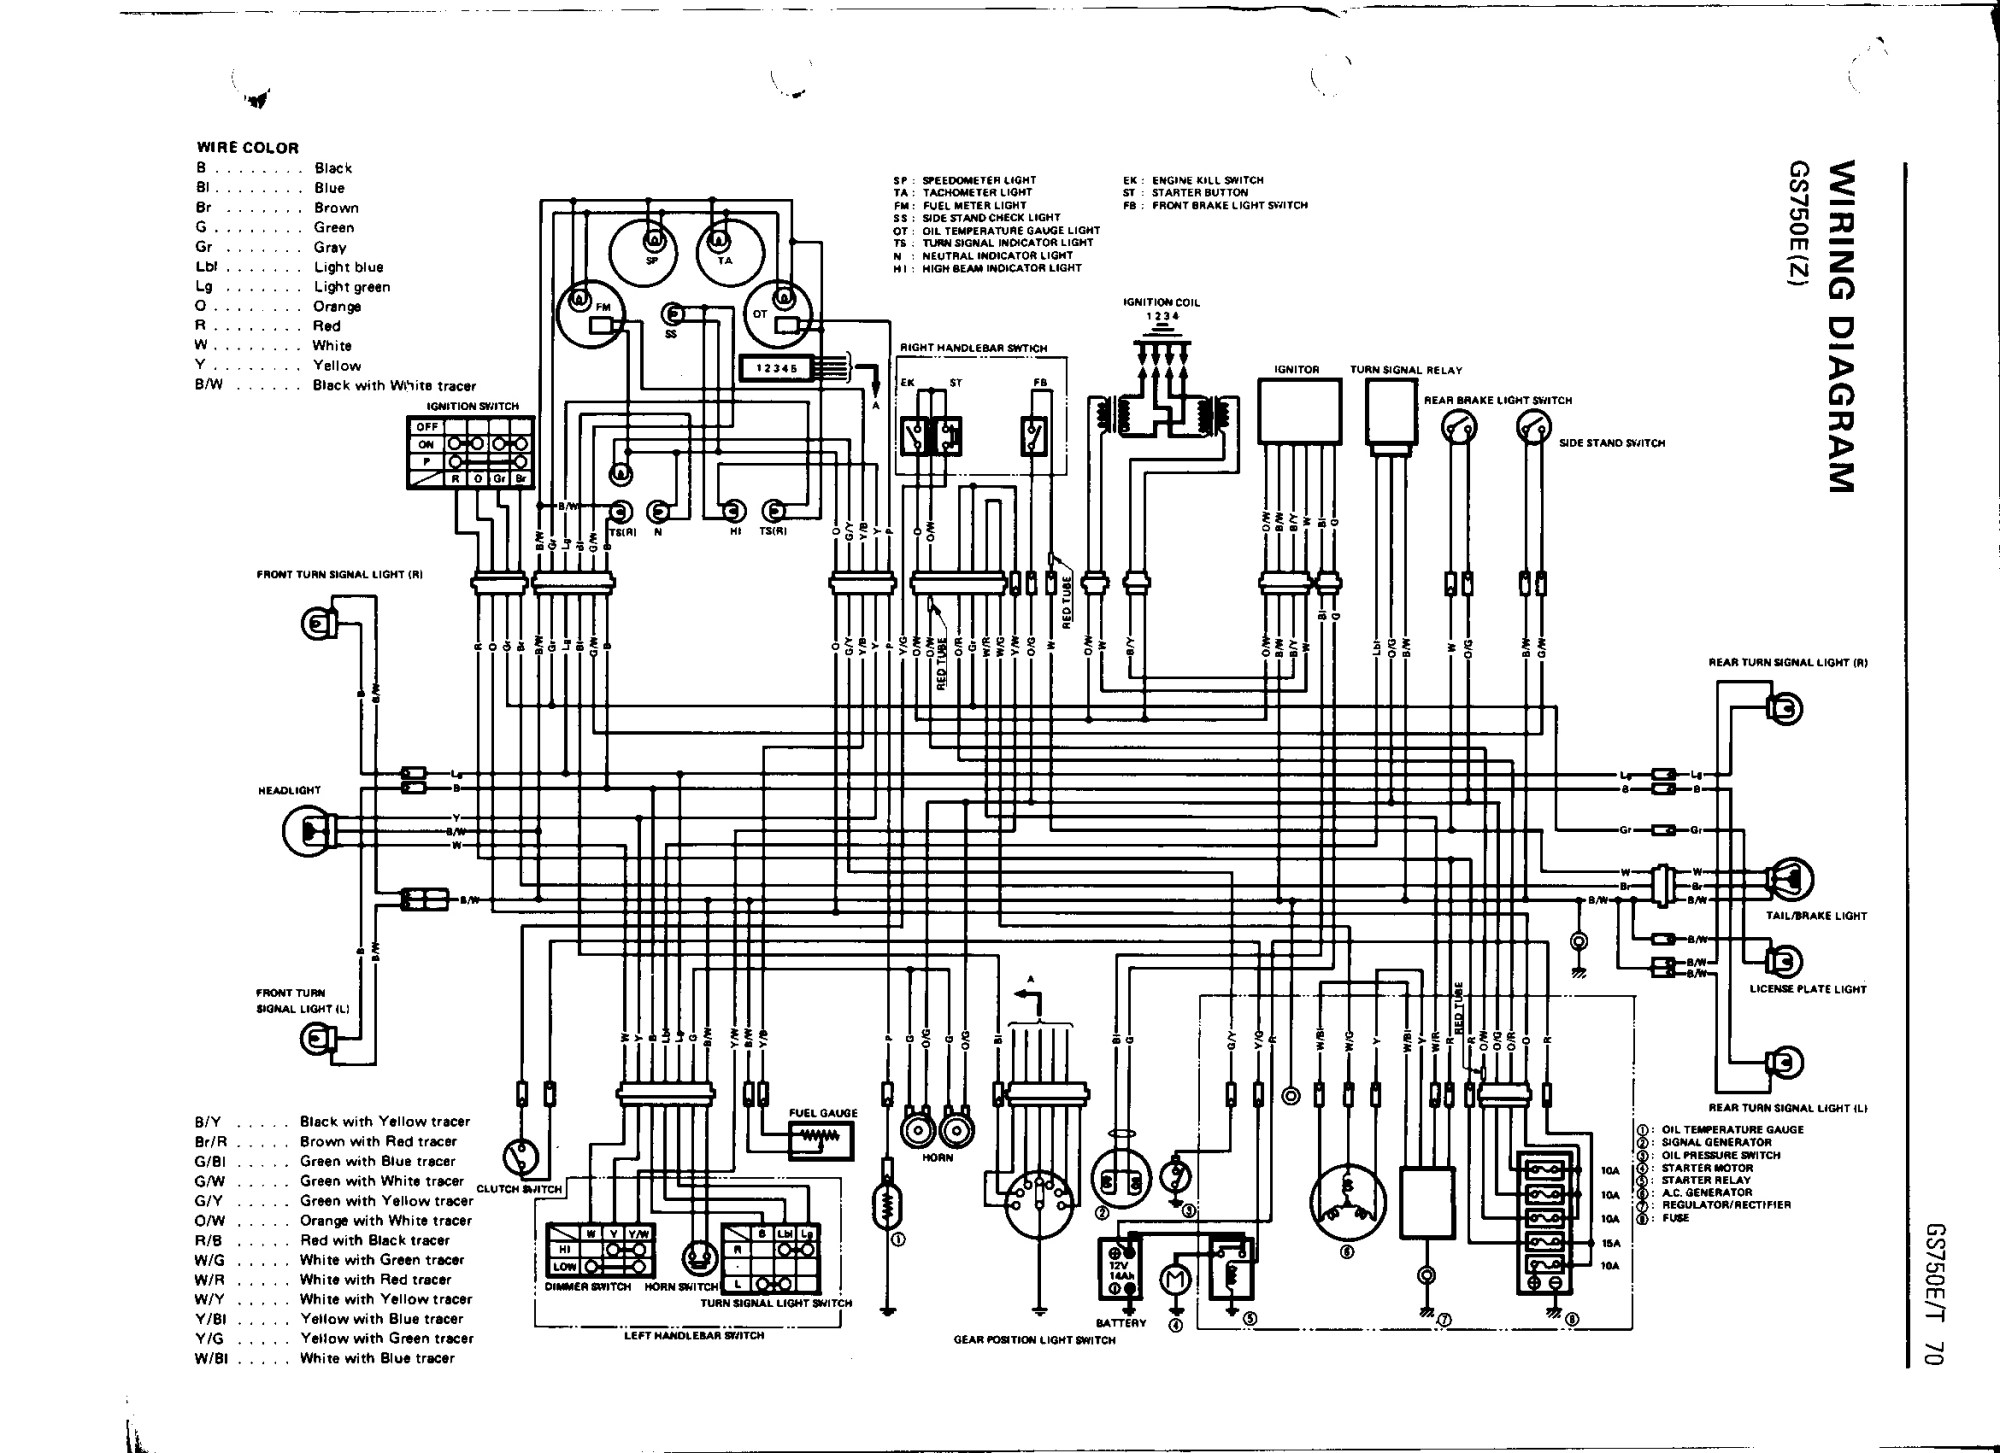 hight resolution of suzuki gs1100 wiring diagram wiring diagramsuzuki gs1100 wiring diagram wiring librarygs750 16 valve color